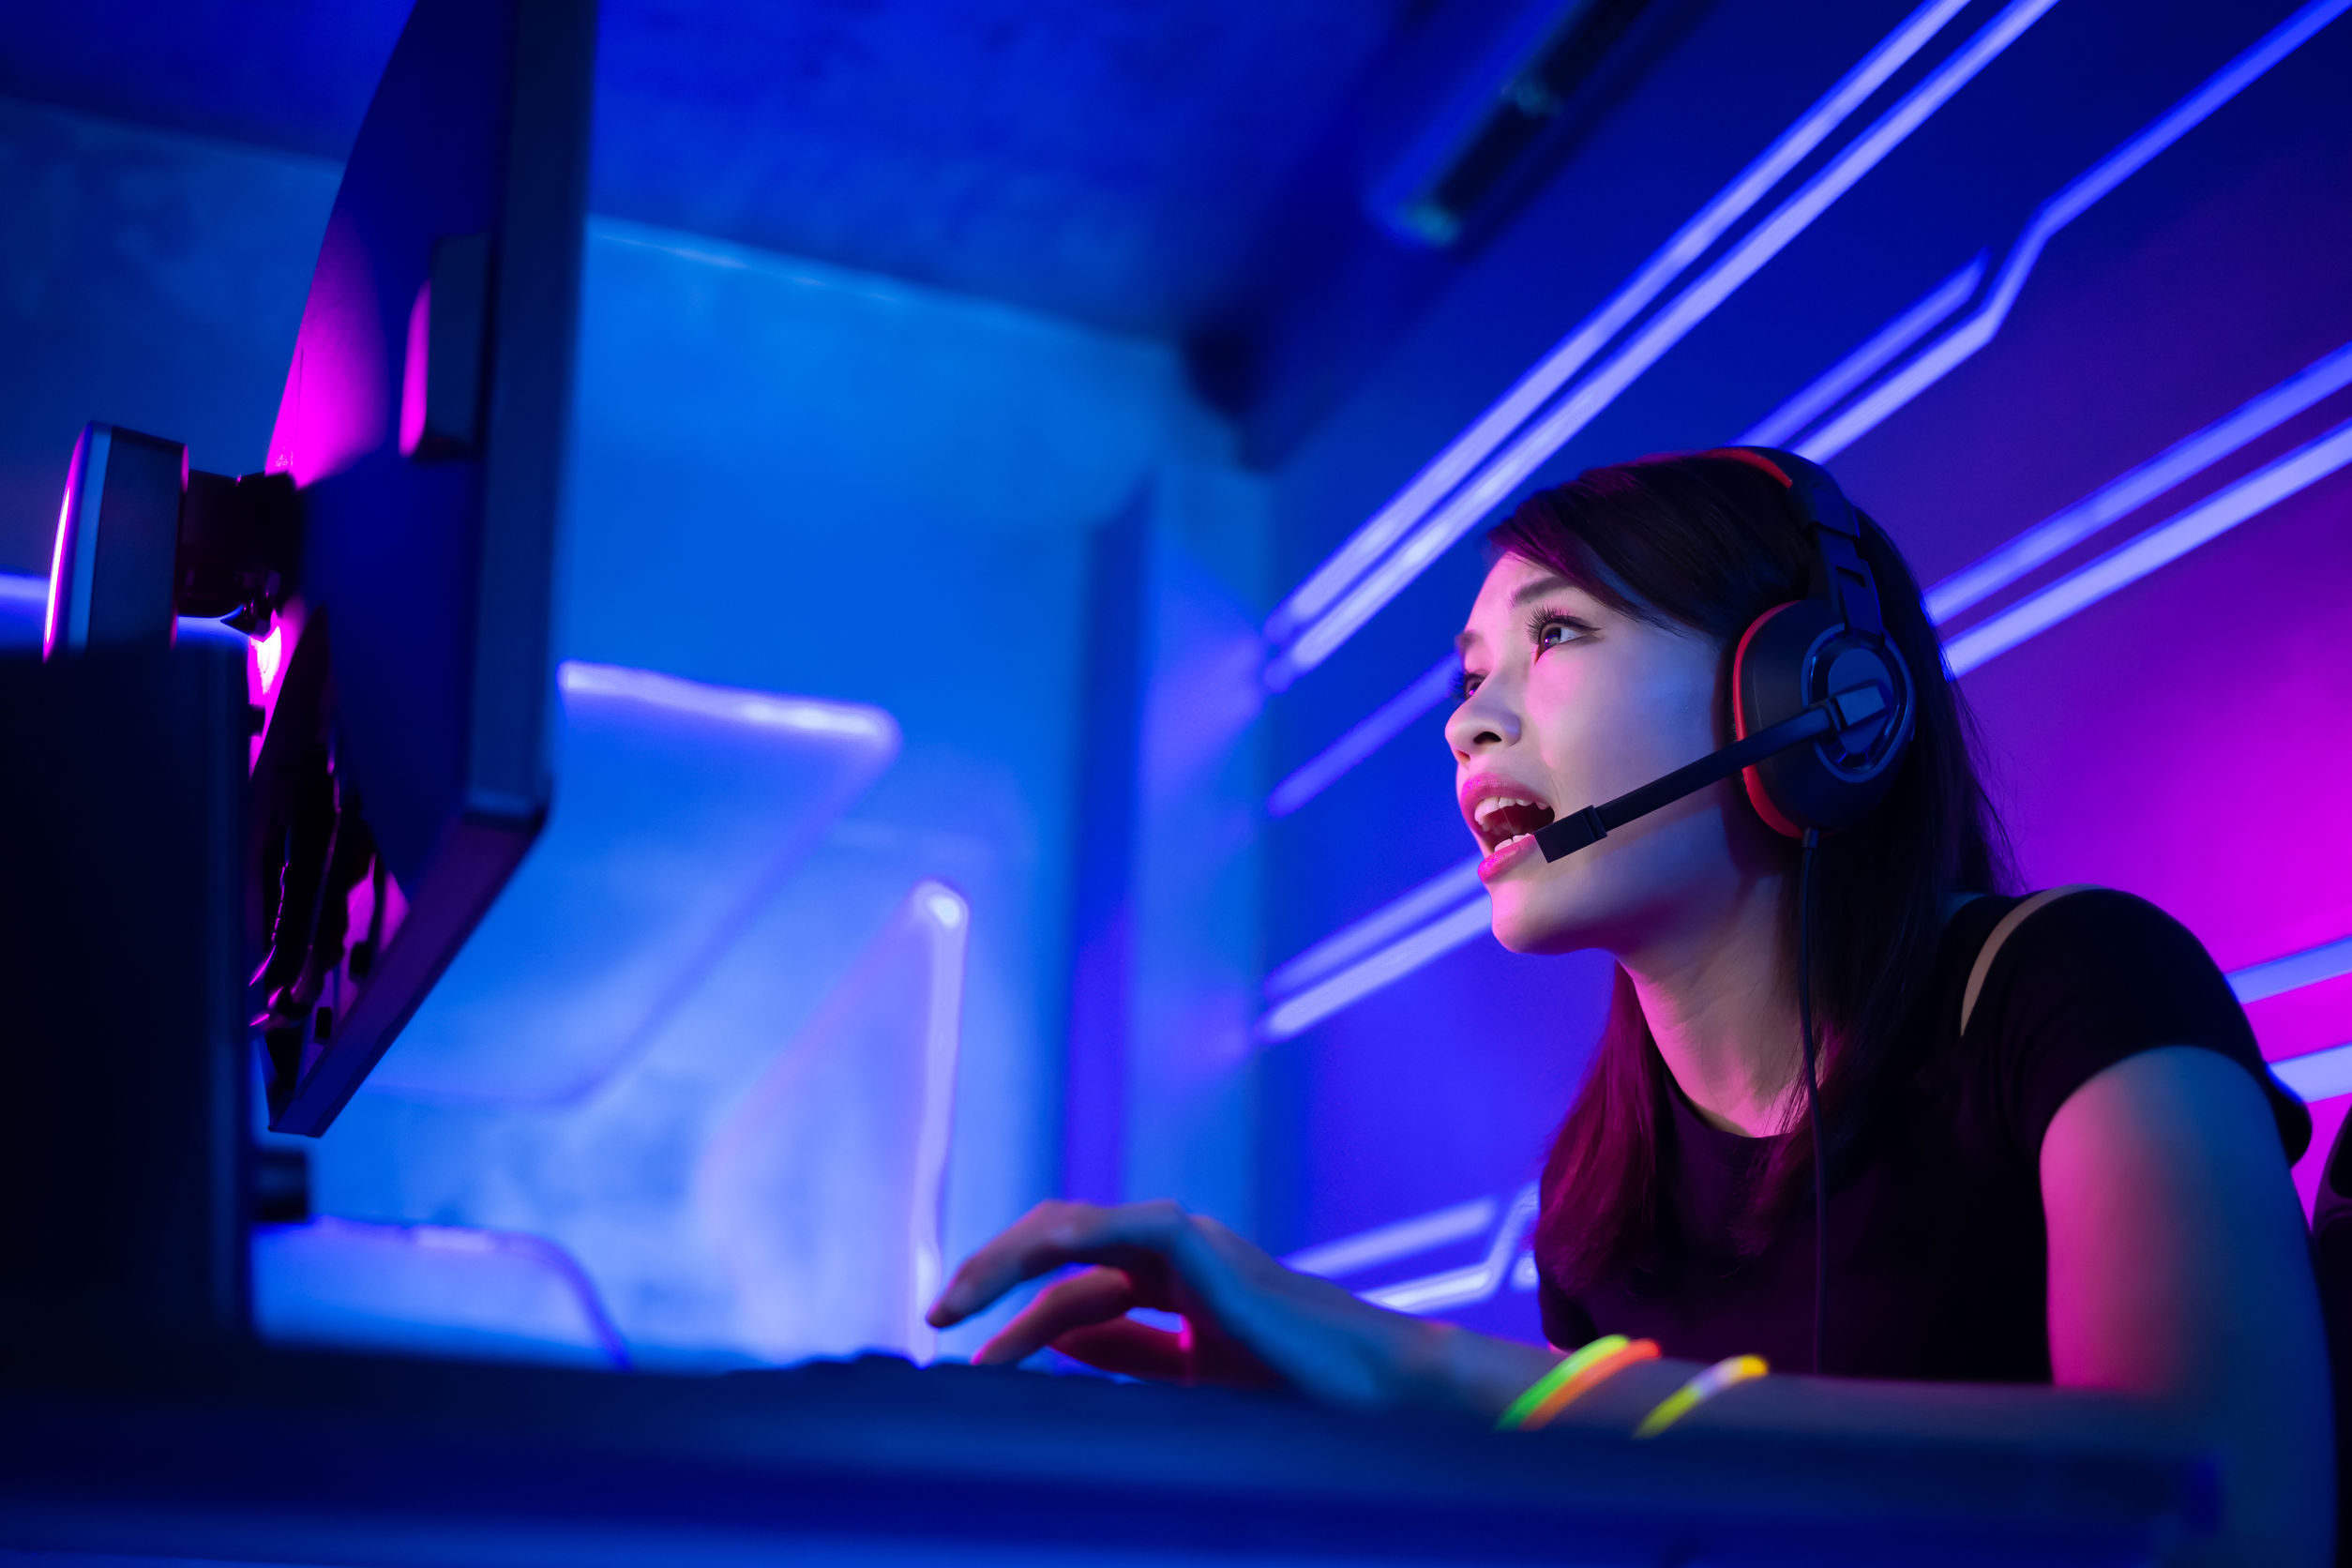 cyber sport gamer playing game